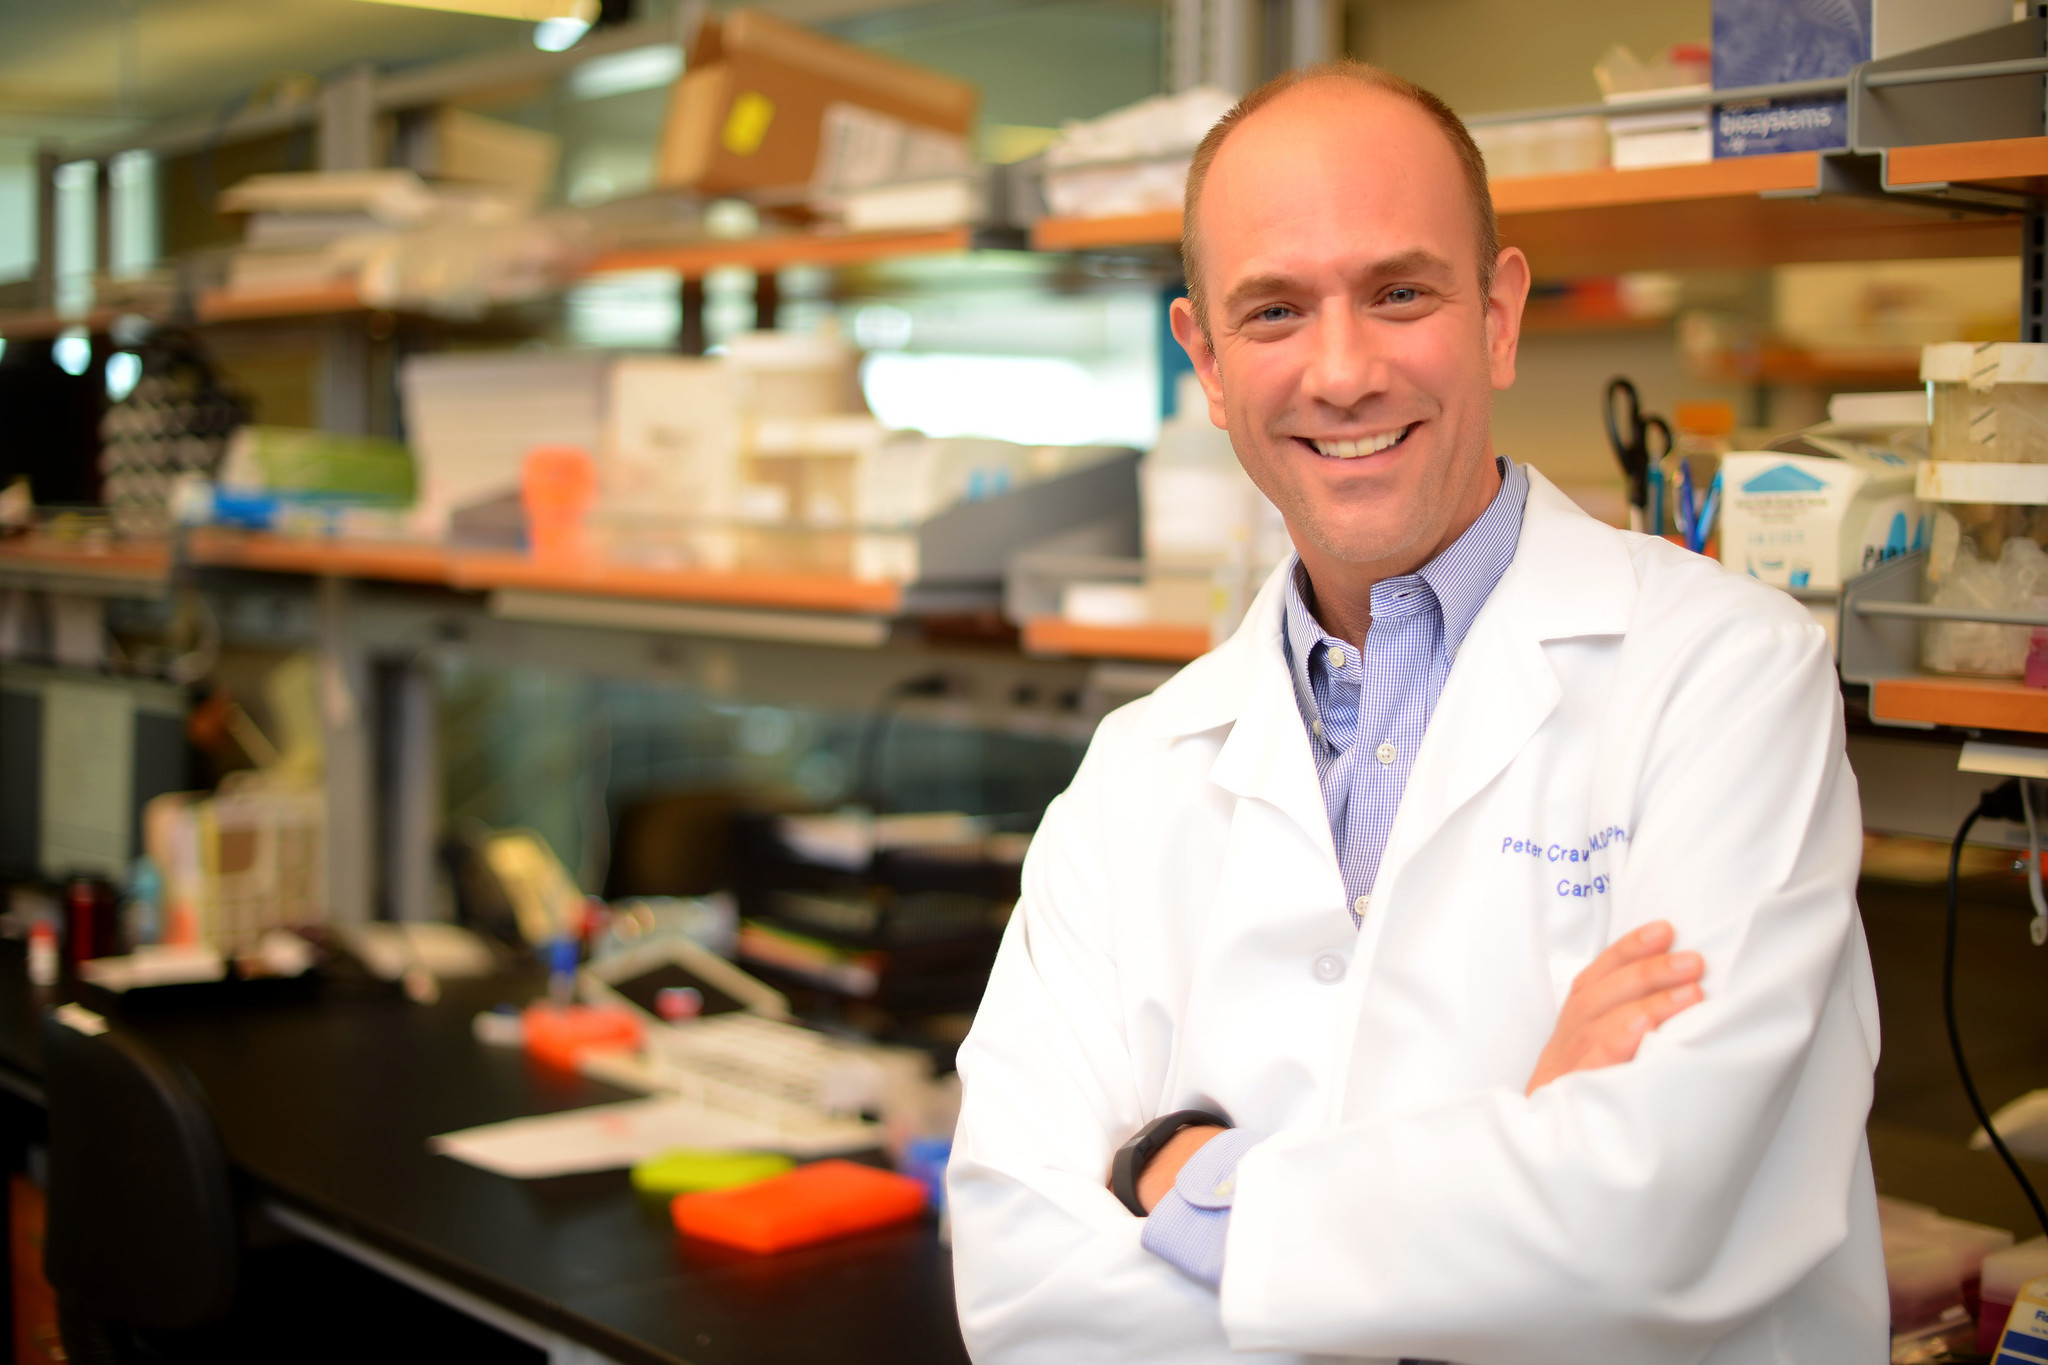 Orlando researcher seeks clues to dangerous fatty liver disease